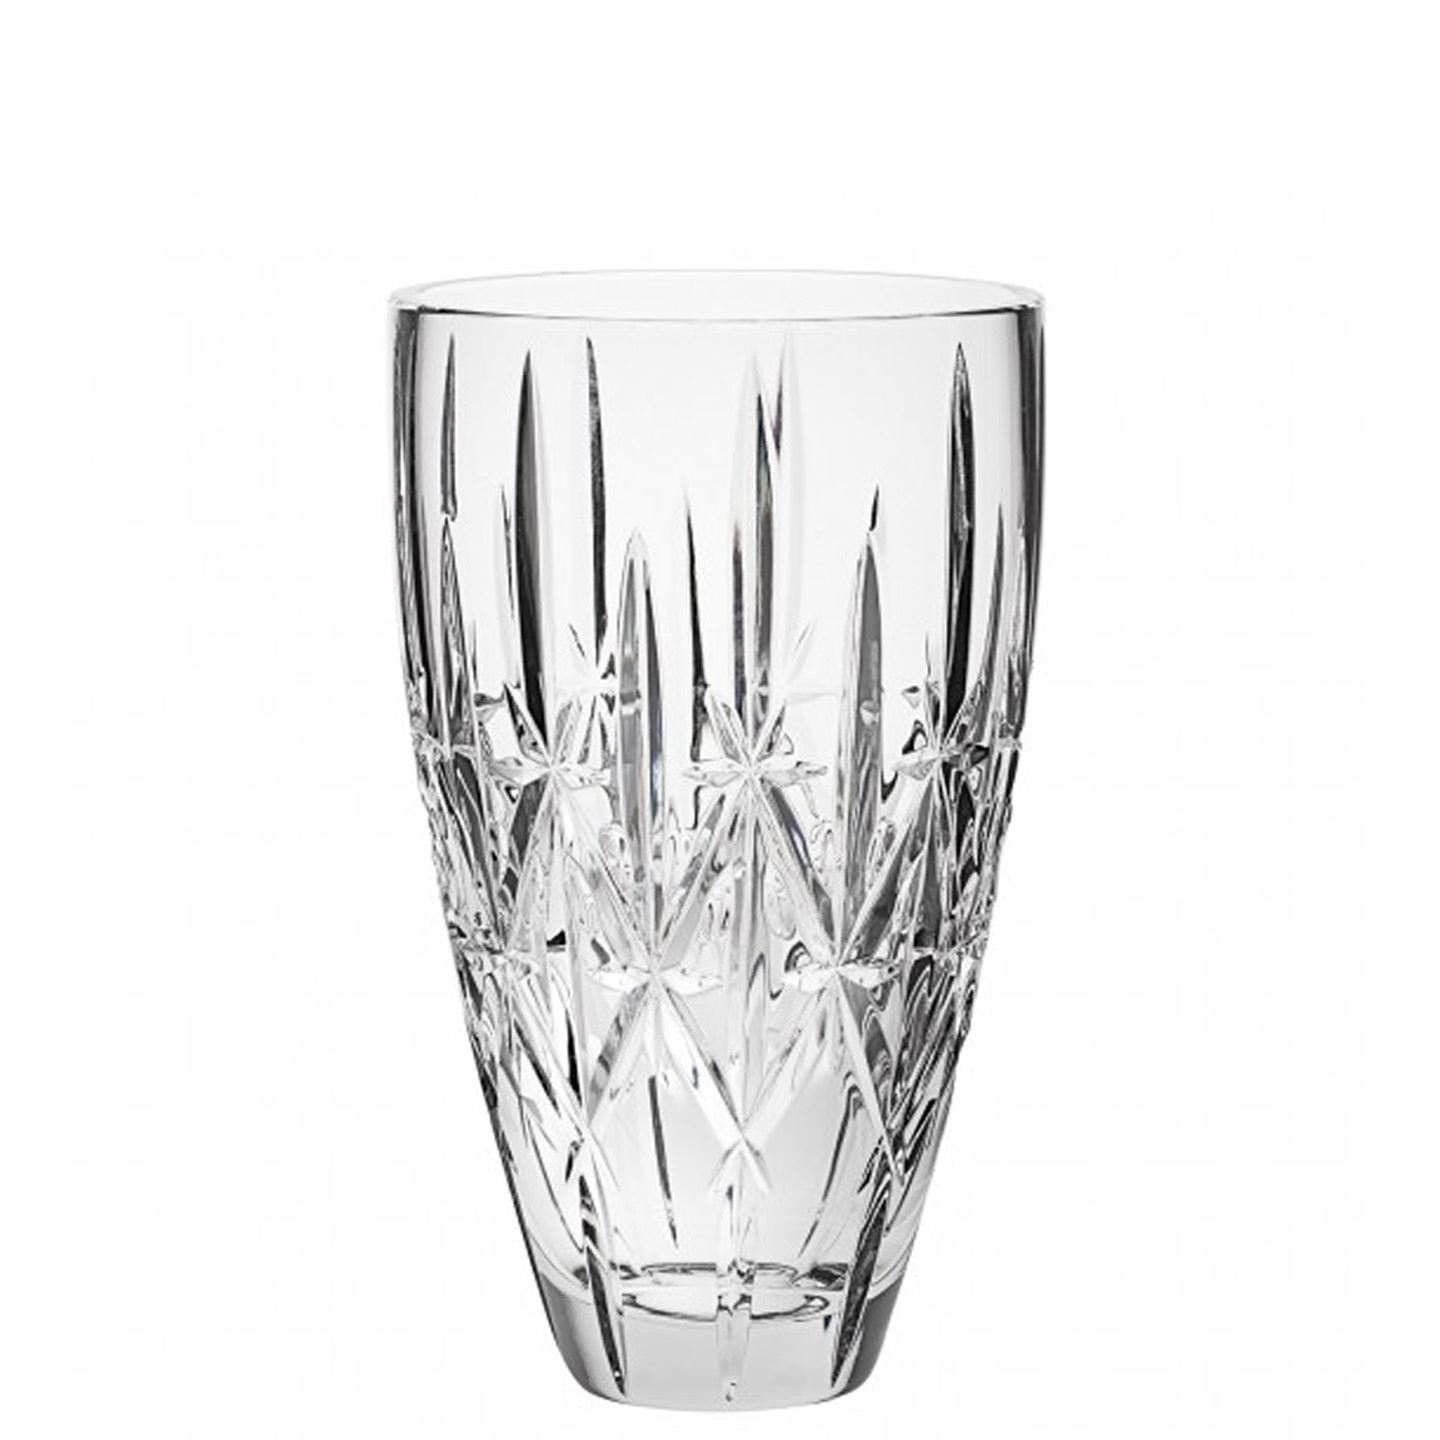 Marquis by Waterford Sparkle Vase 23cm | Crystal